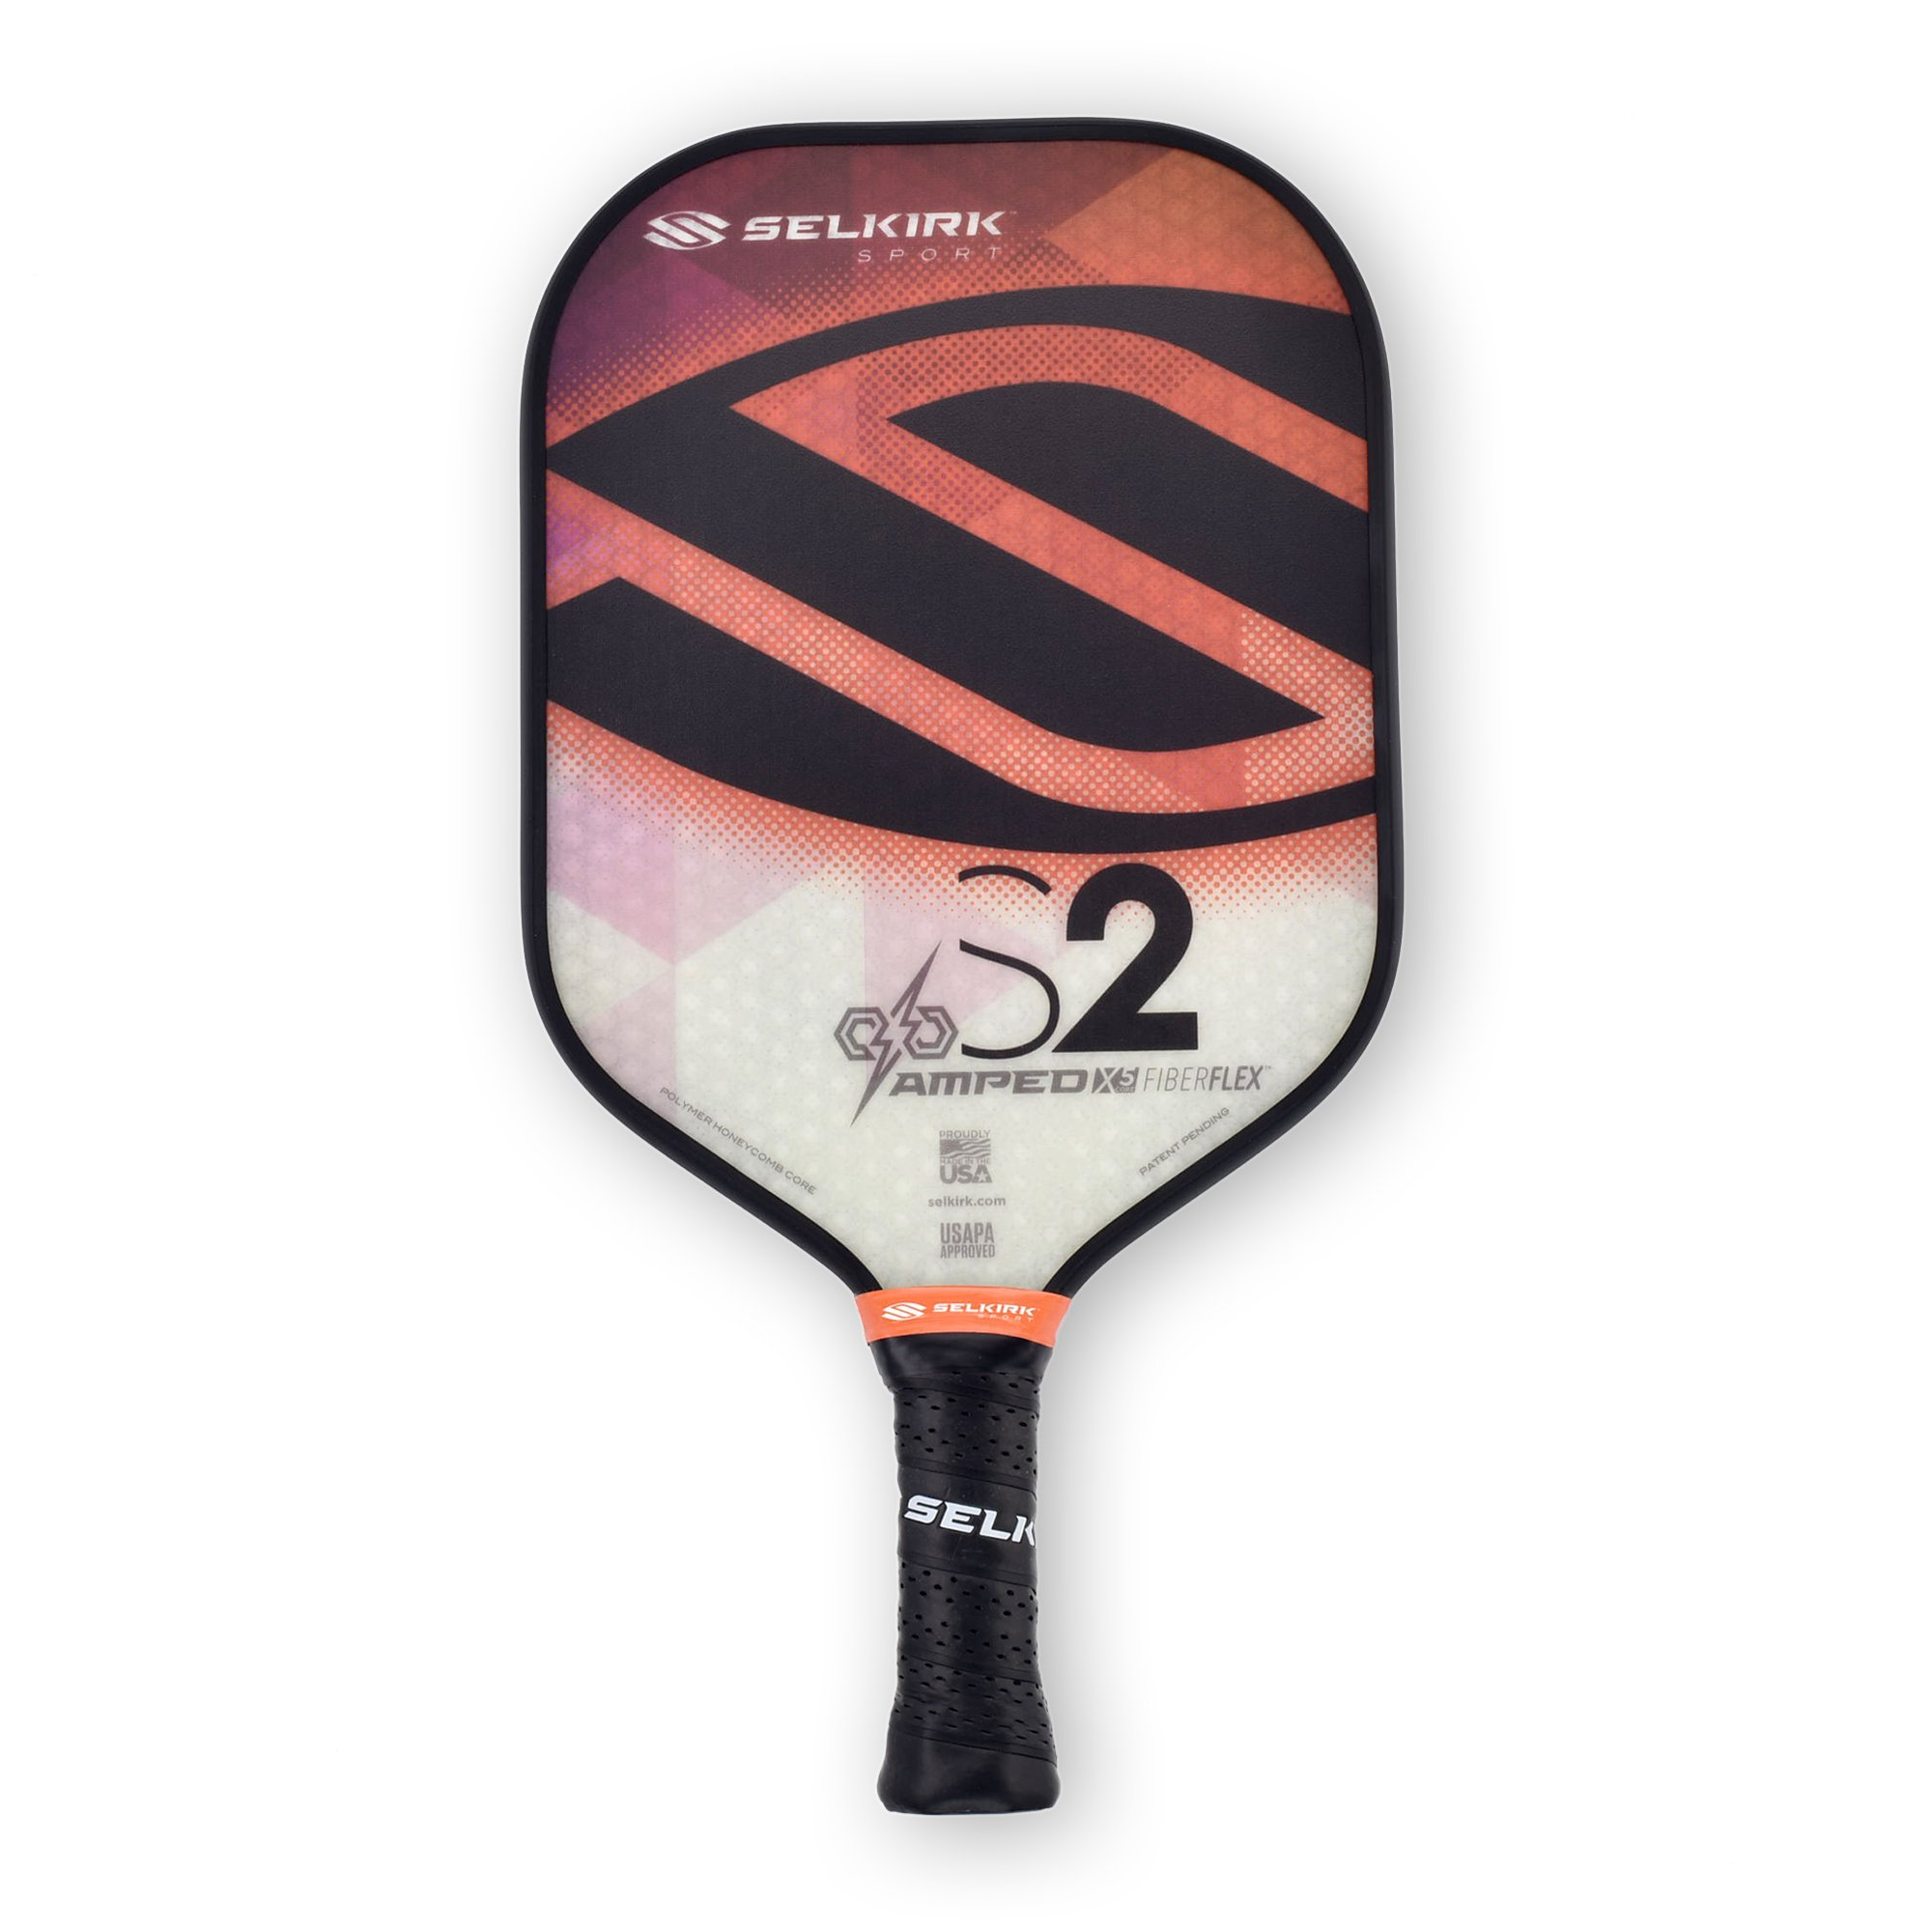 Selkirk Amped Pickleball Paddle - USAPA Approved - X5 Polypropylene Core - FiberFlex Fiberglass Face - 5 Sizes: Epic, S2, Omni, Maxima, and INVIKTA (S2 Midweight - Fire Opal) by Selkirk Sport